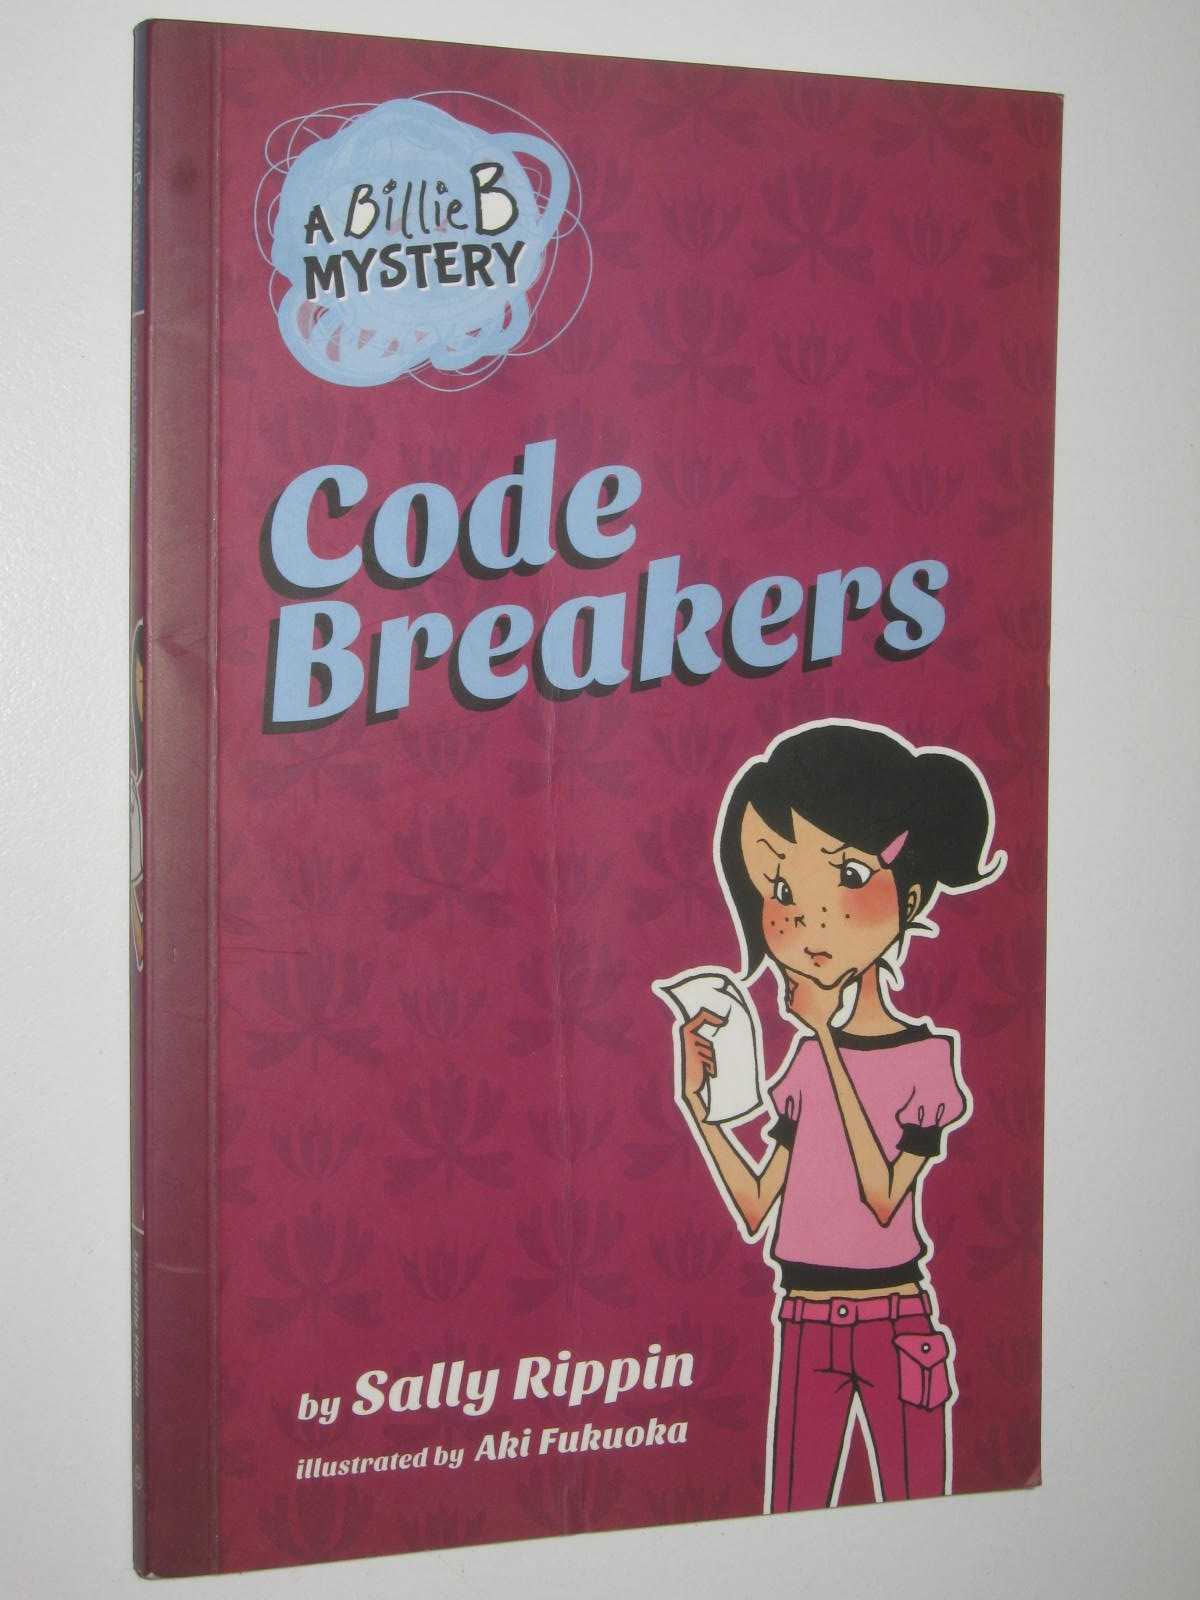 Image for Code Breakers - Billie B Mystery Series #2